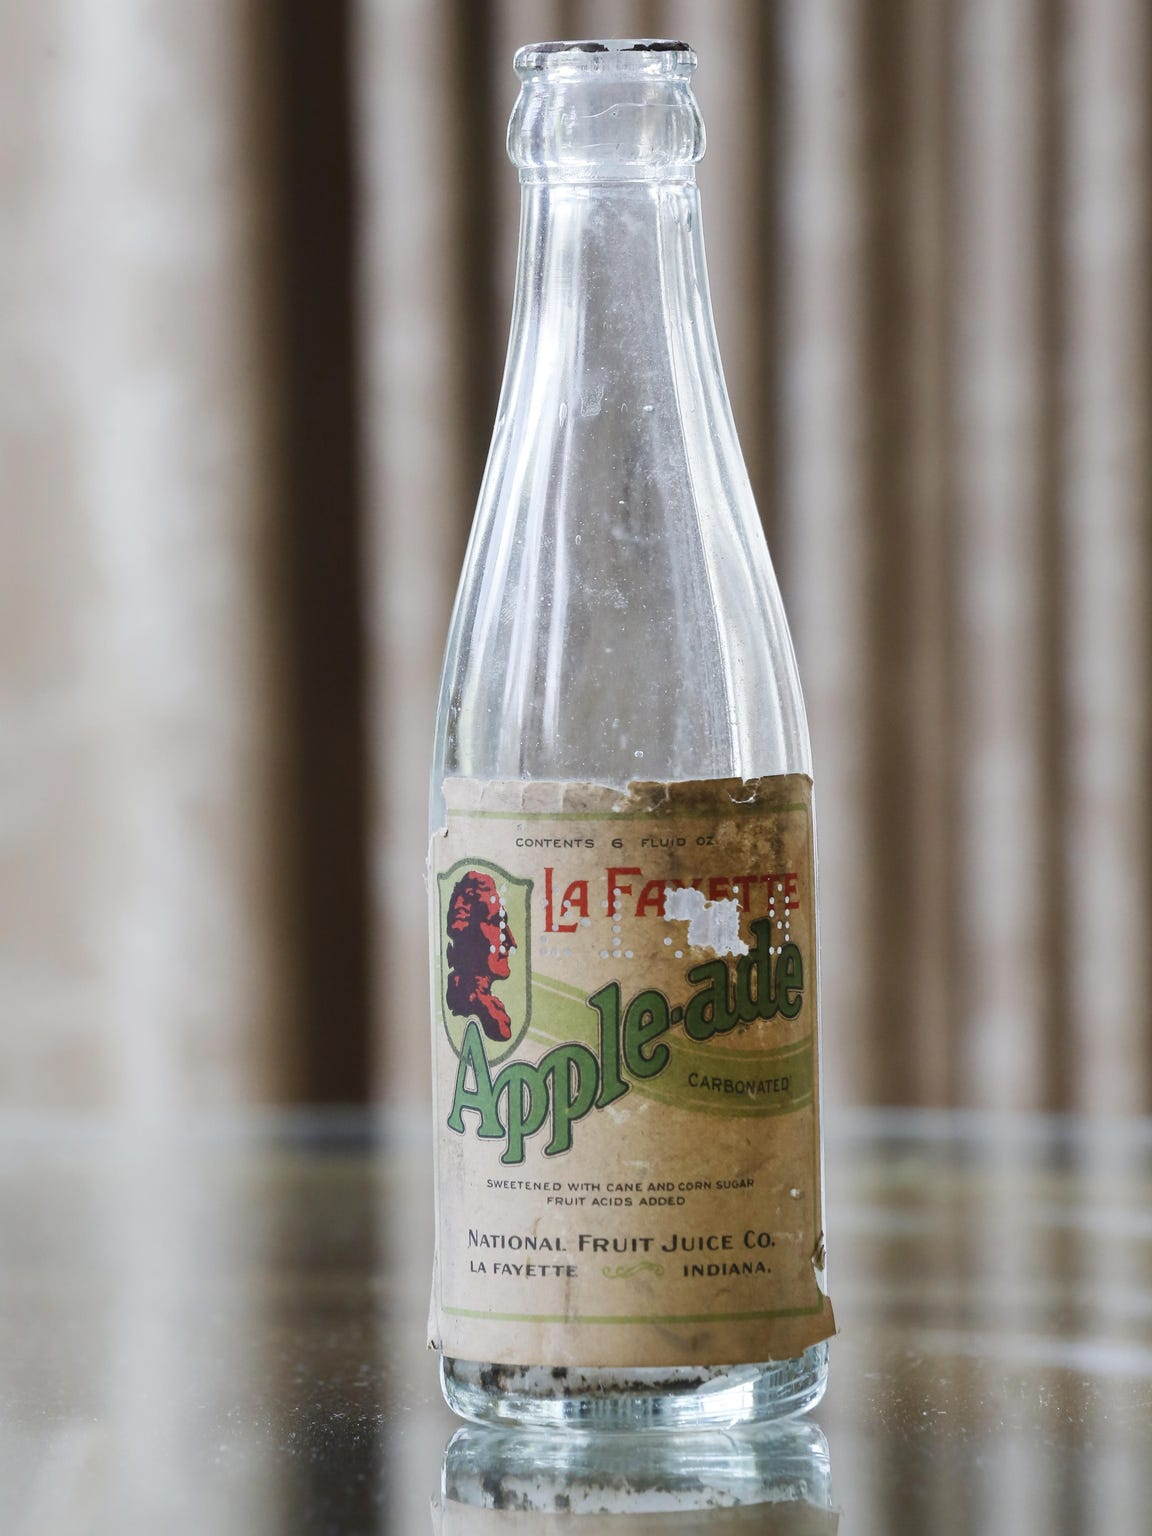 A Thieme & Wagner's Apella Apple-ade bottle that is